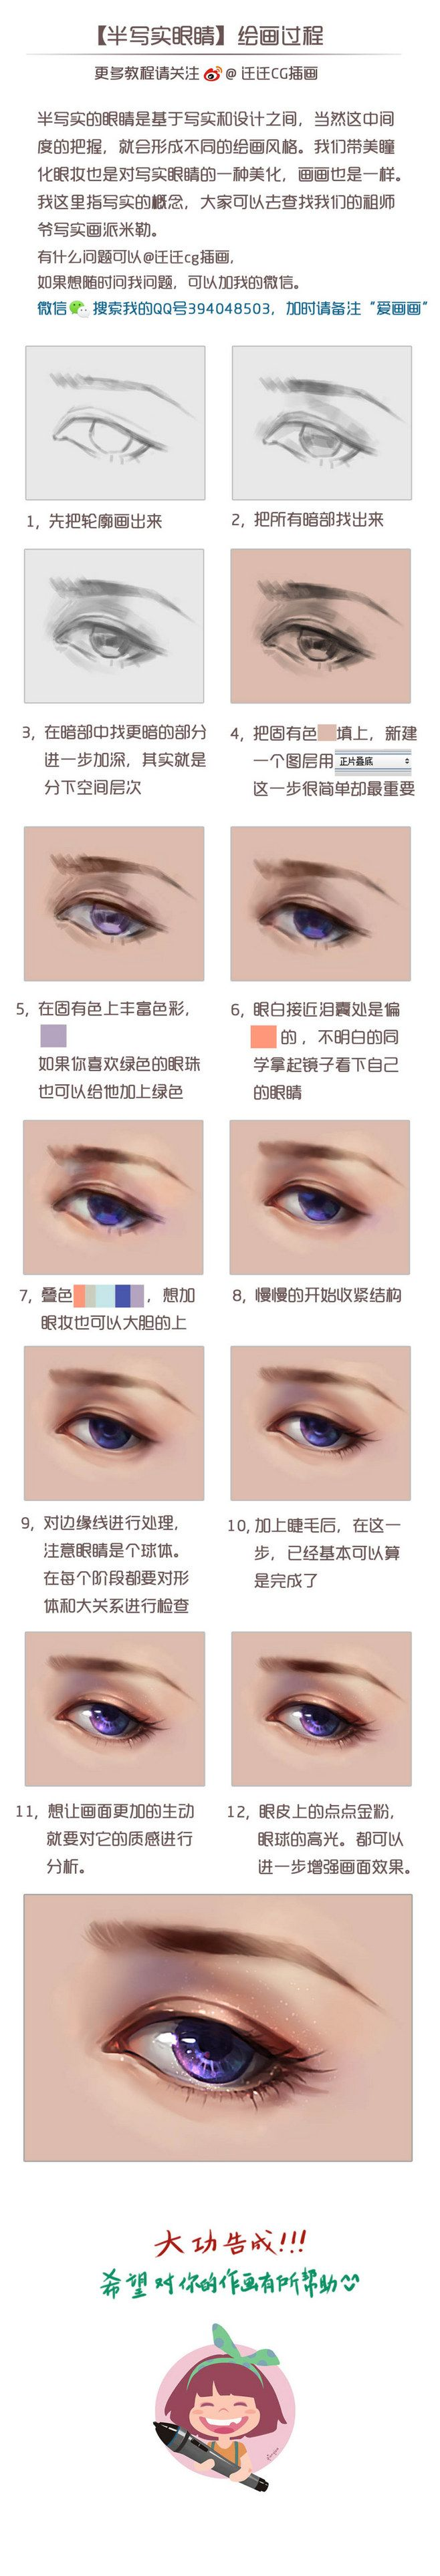 Original works: [semi realistic eye painting] -CG painting ...